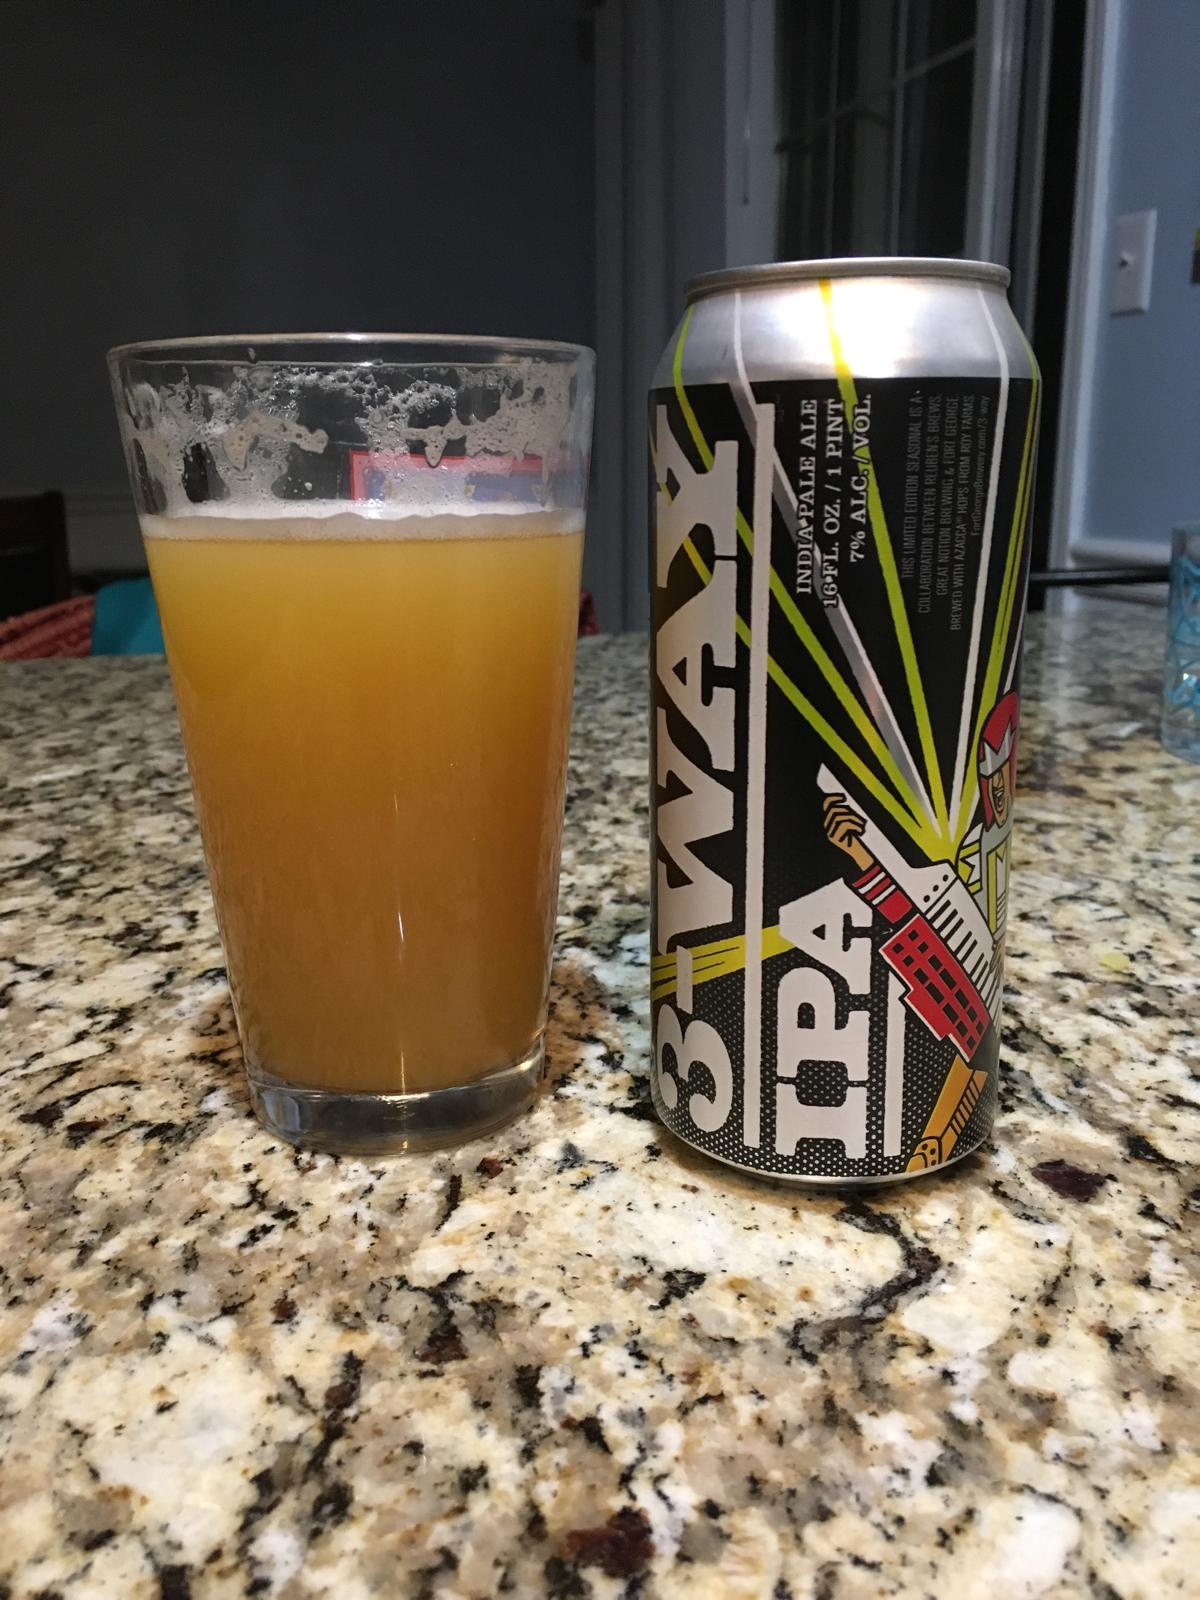 3-Way IPA - 2017 (Collaboration with Reuben